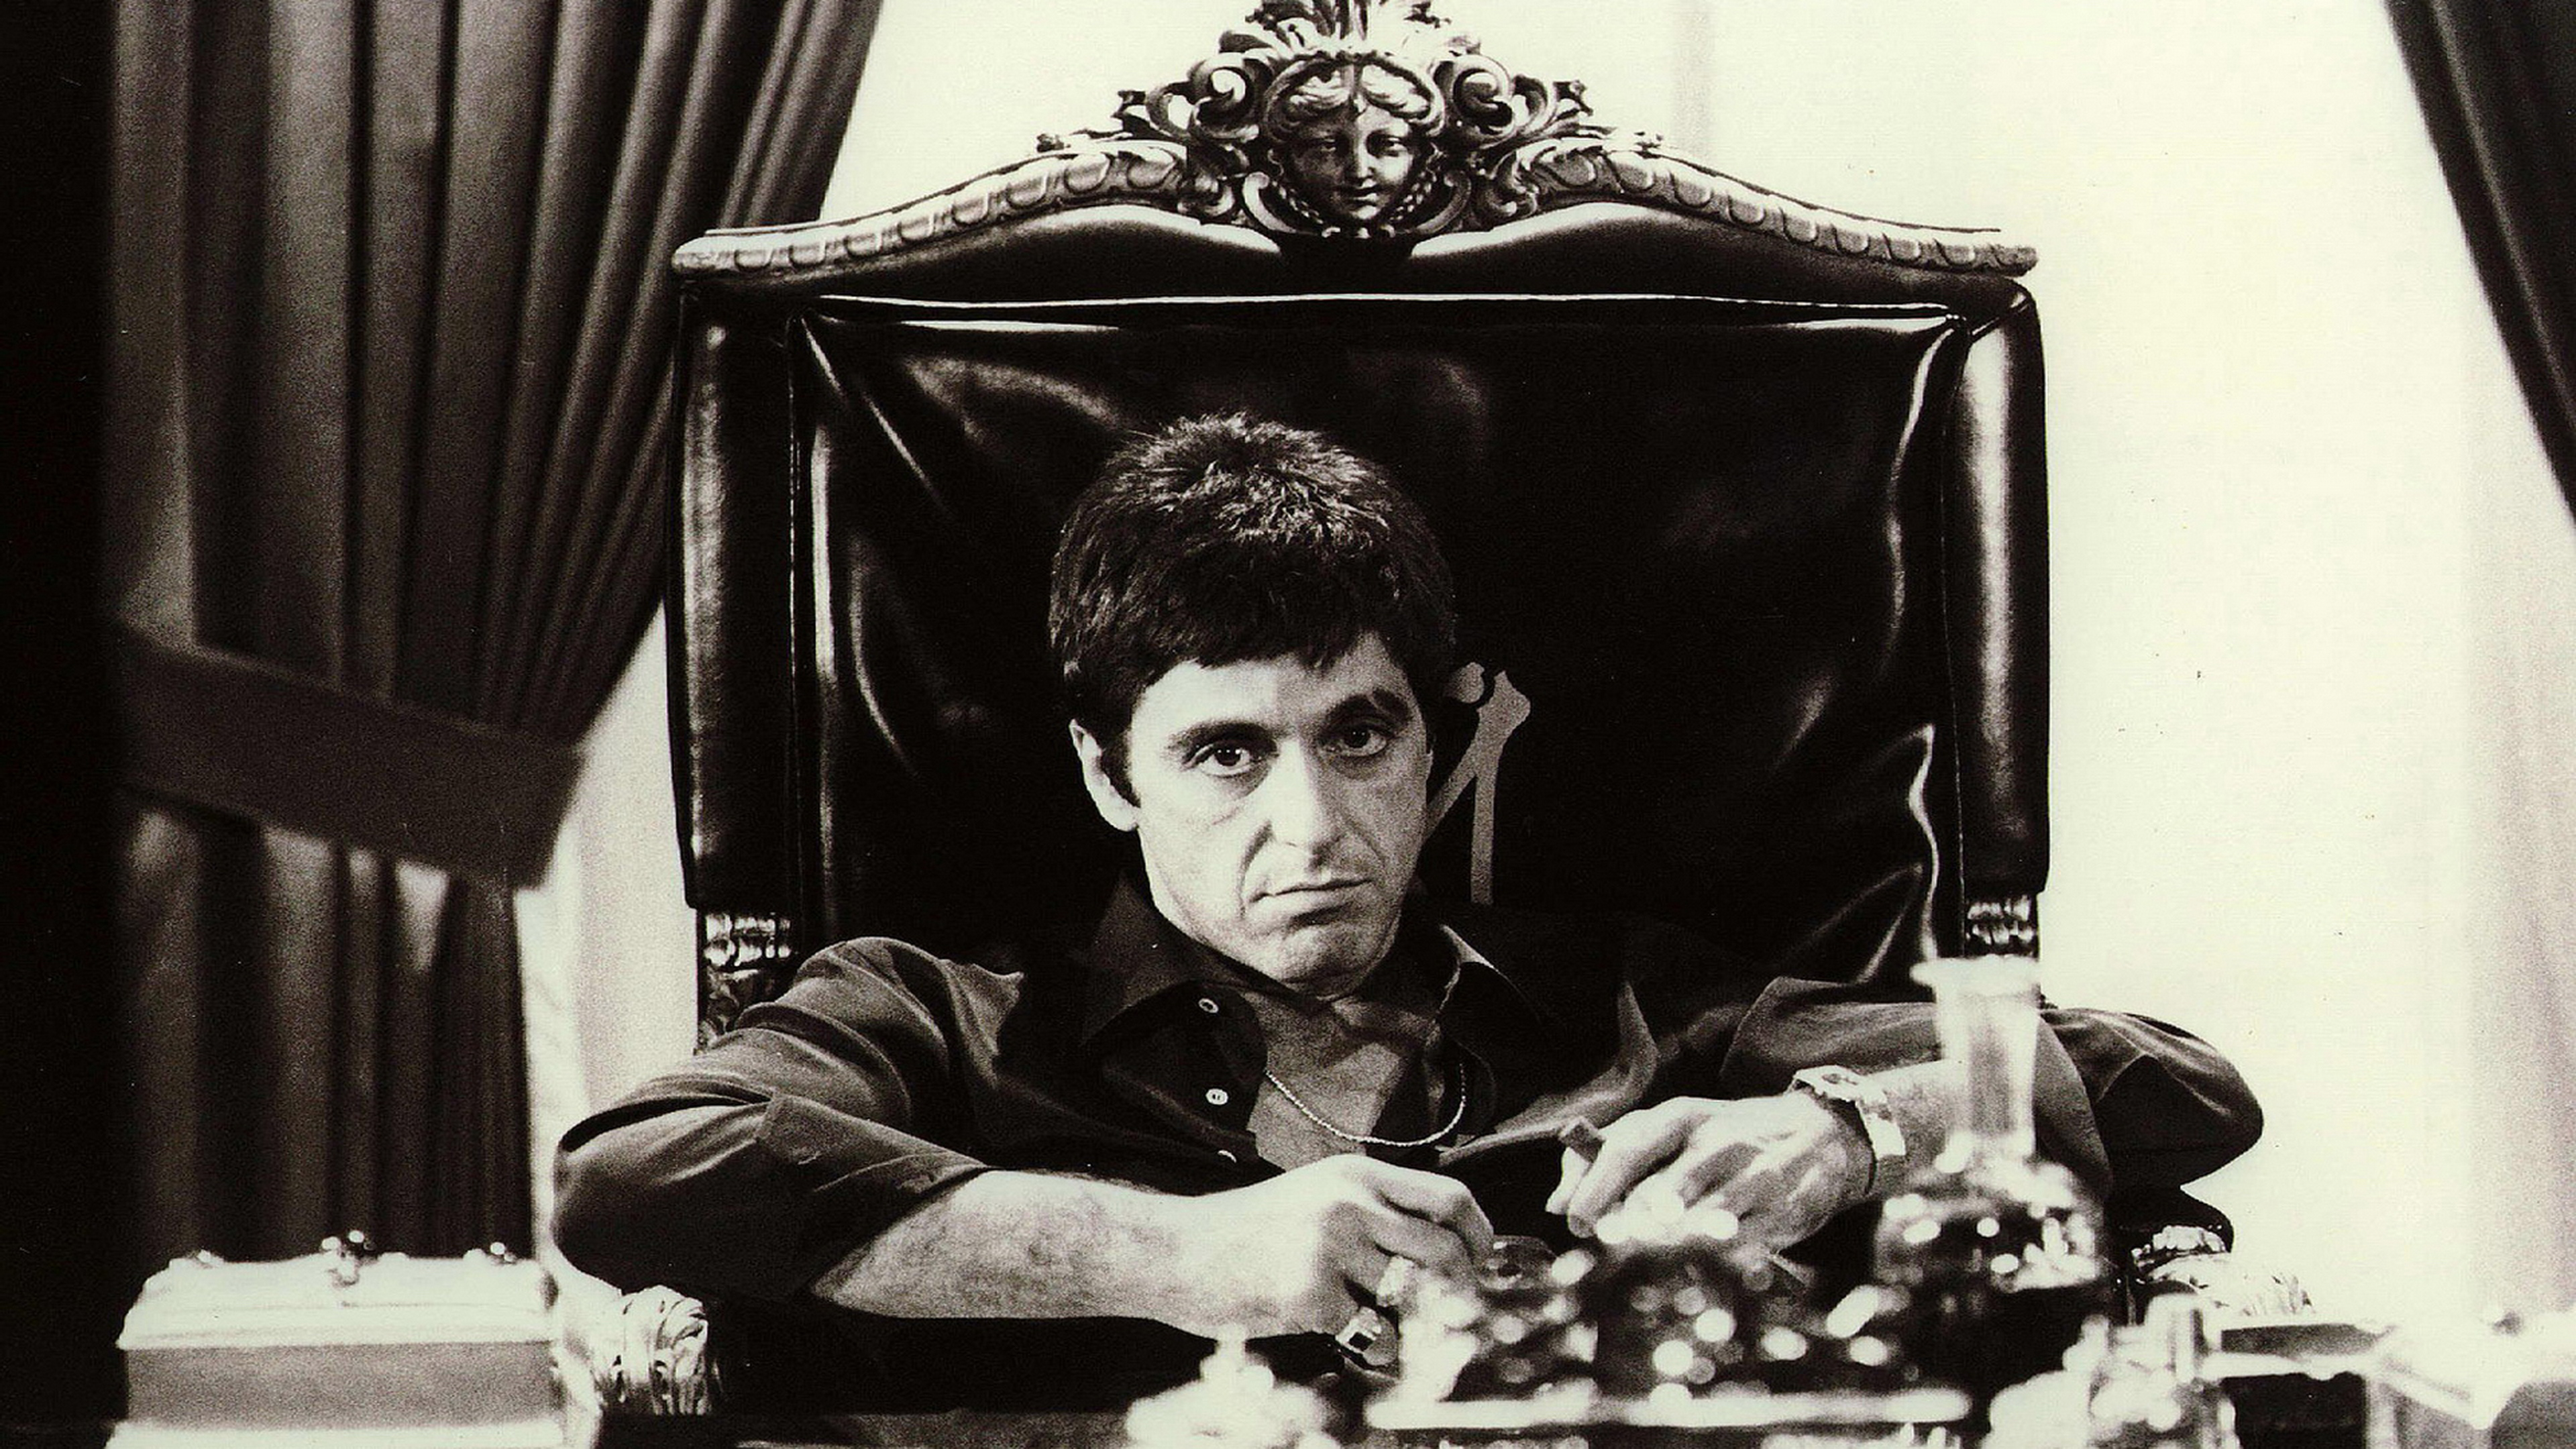 Scarface Ultra HD Wallpaper 4k   HD Wallpapers Ultra HD Wallpapers 3840x2160